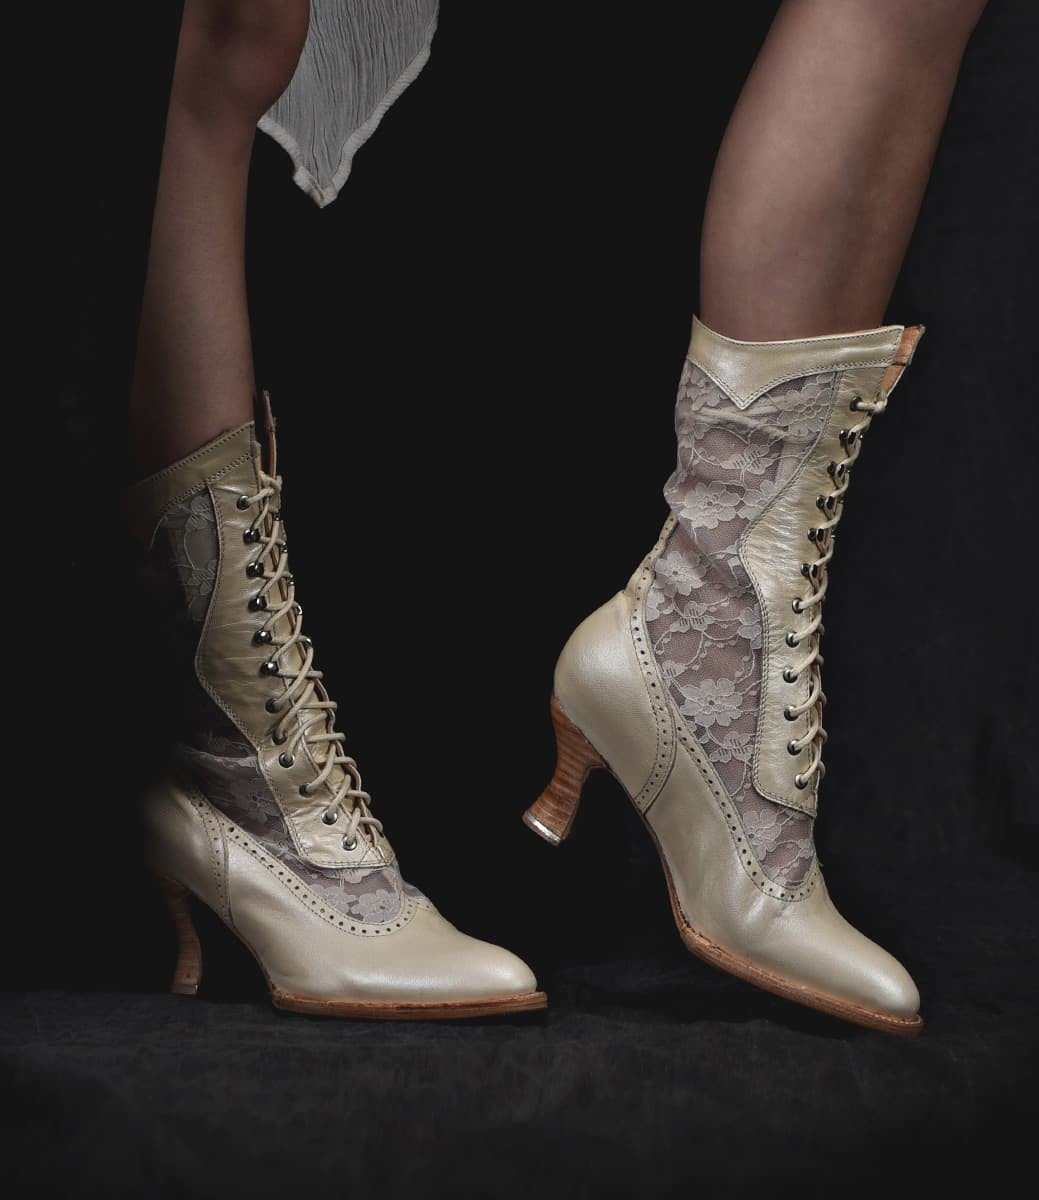 Vintage Wedding Shoes, Flats, Boots, Heels Victorian Inspired Leather  Lace Boots in Pearl $265.00 AT vintagedancer.com